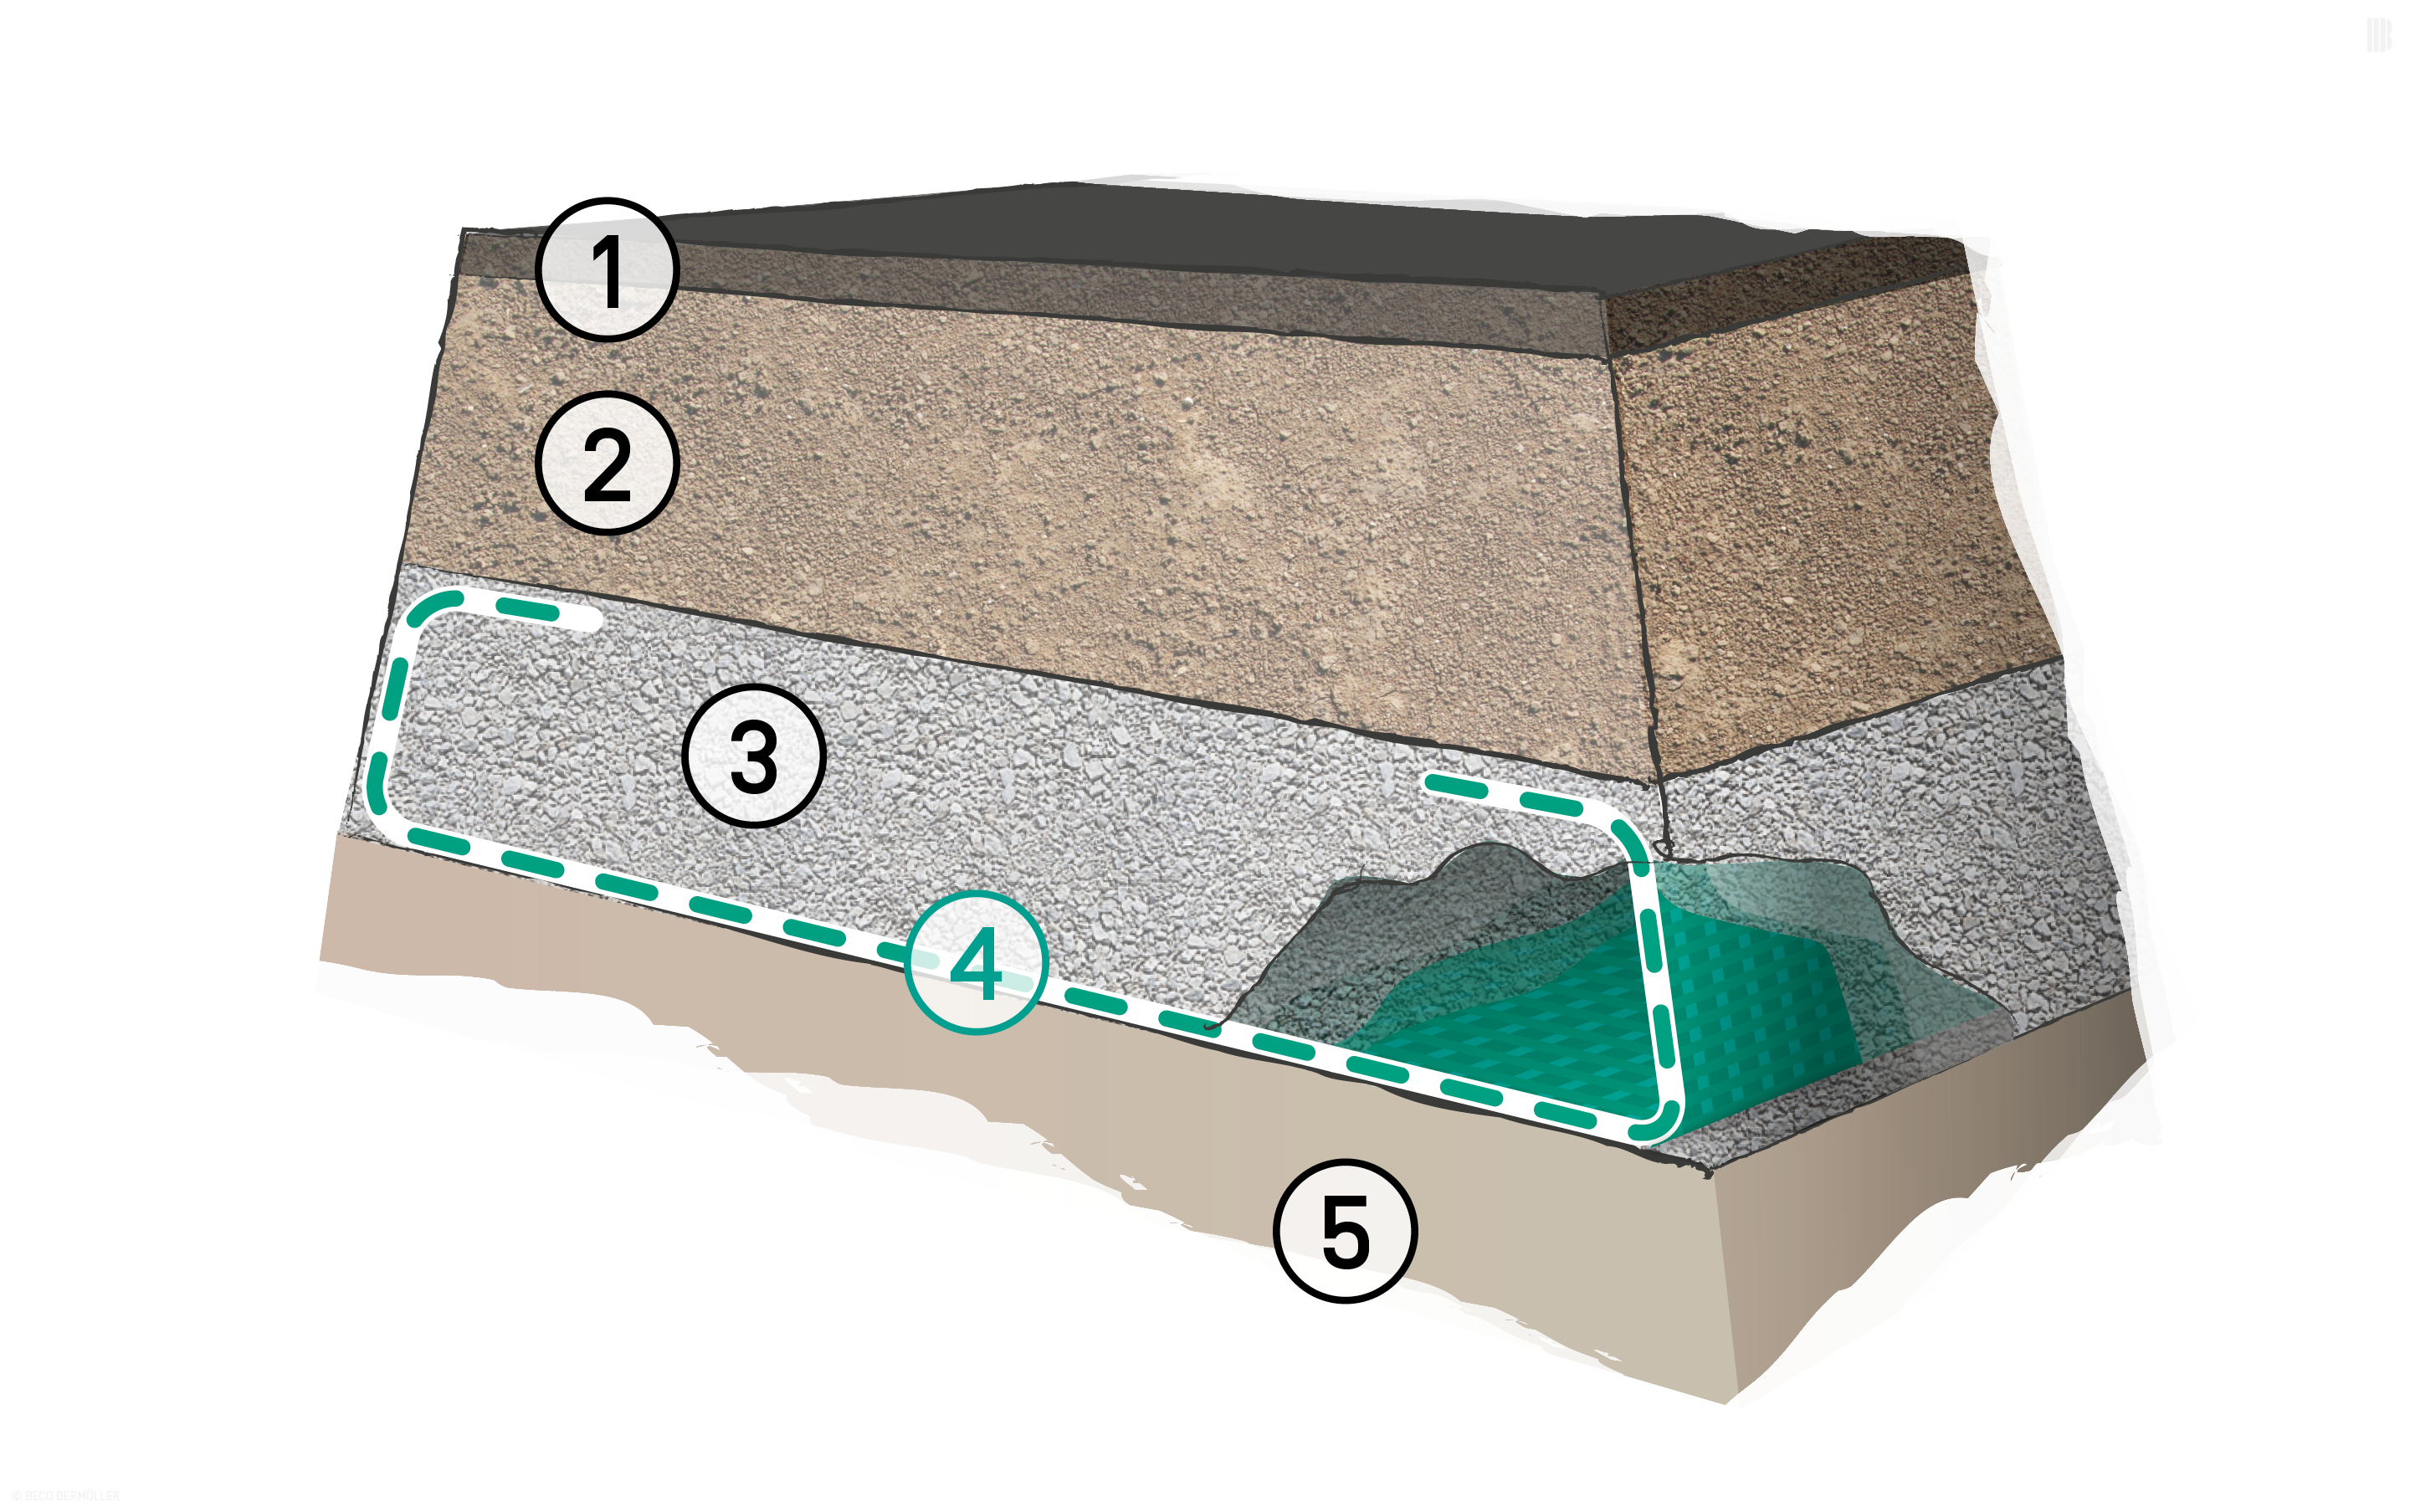 Reinforcing layer under a dam: 1. Bound surface layer | 2. Unbound surface layer | 3. Base layer | 4. BEFORCE Woven Geotextiles | 5. Subsoil with poor load-bearing capacity